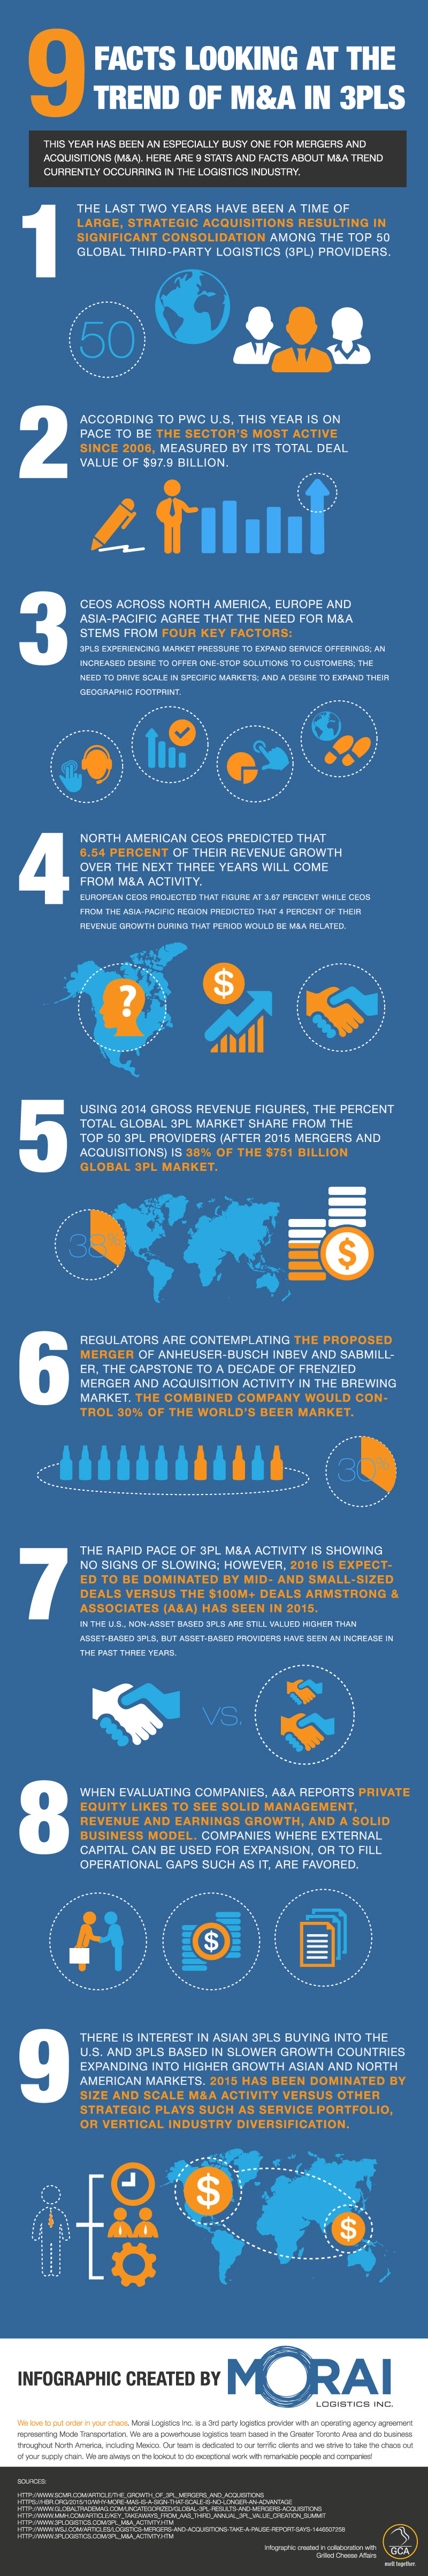 morai-logistics-infographic-9-facts-looking-at-mergers-and-acquisitions-in-3pls